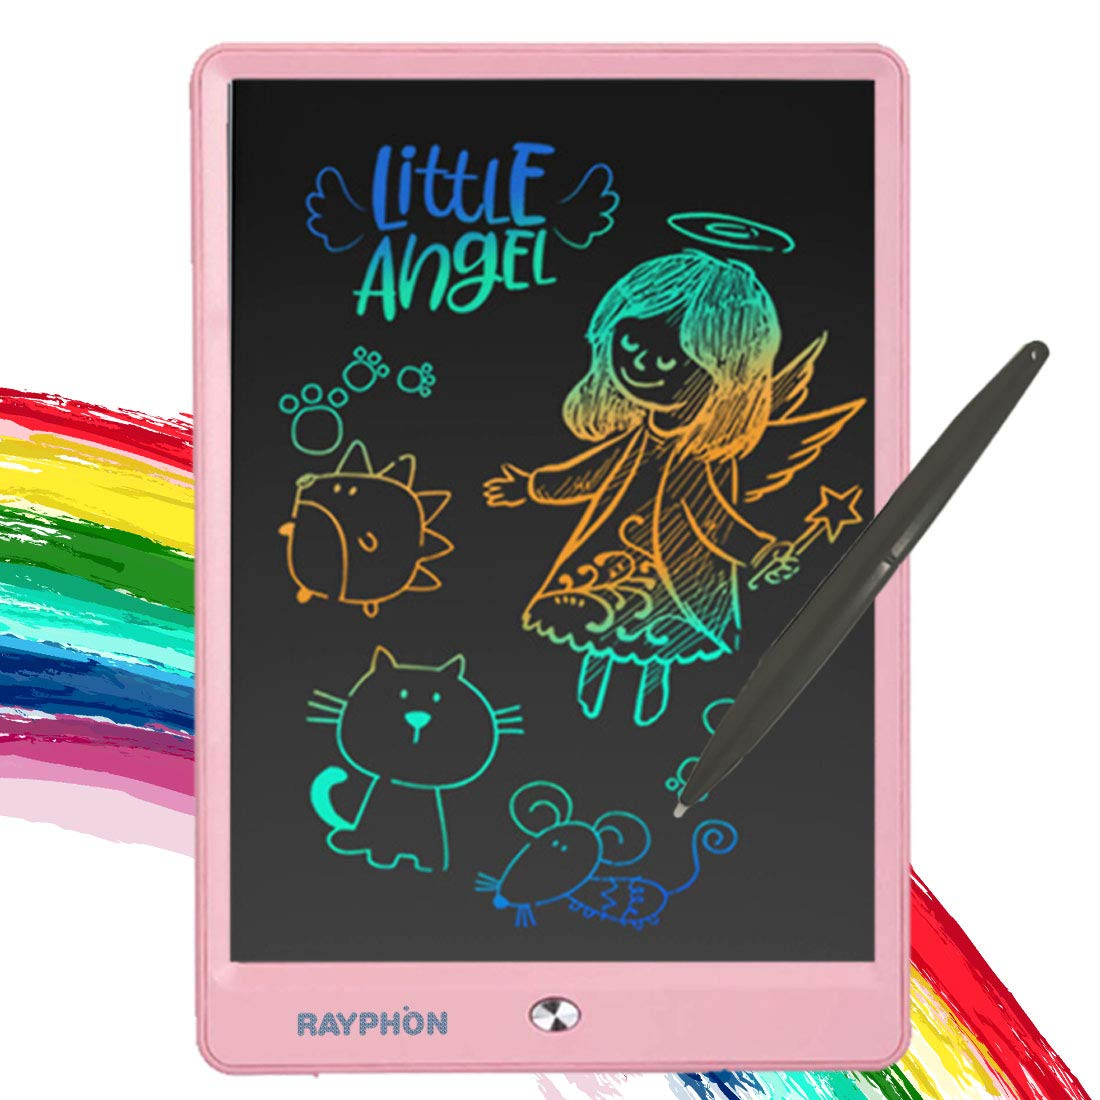 ZBHANTANG LCD Writing Tablet 10 Inch Drawing Board Doodle Board with Colorful Screen, Writing Board Electronic Doodle Pads Learning Tablet for Kids and Adults (Pink, 10 inch)